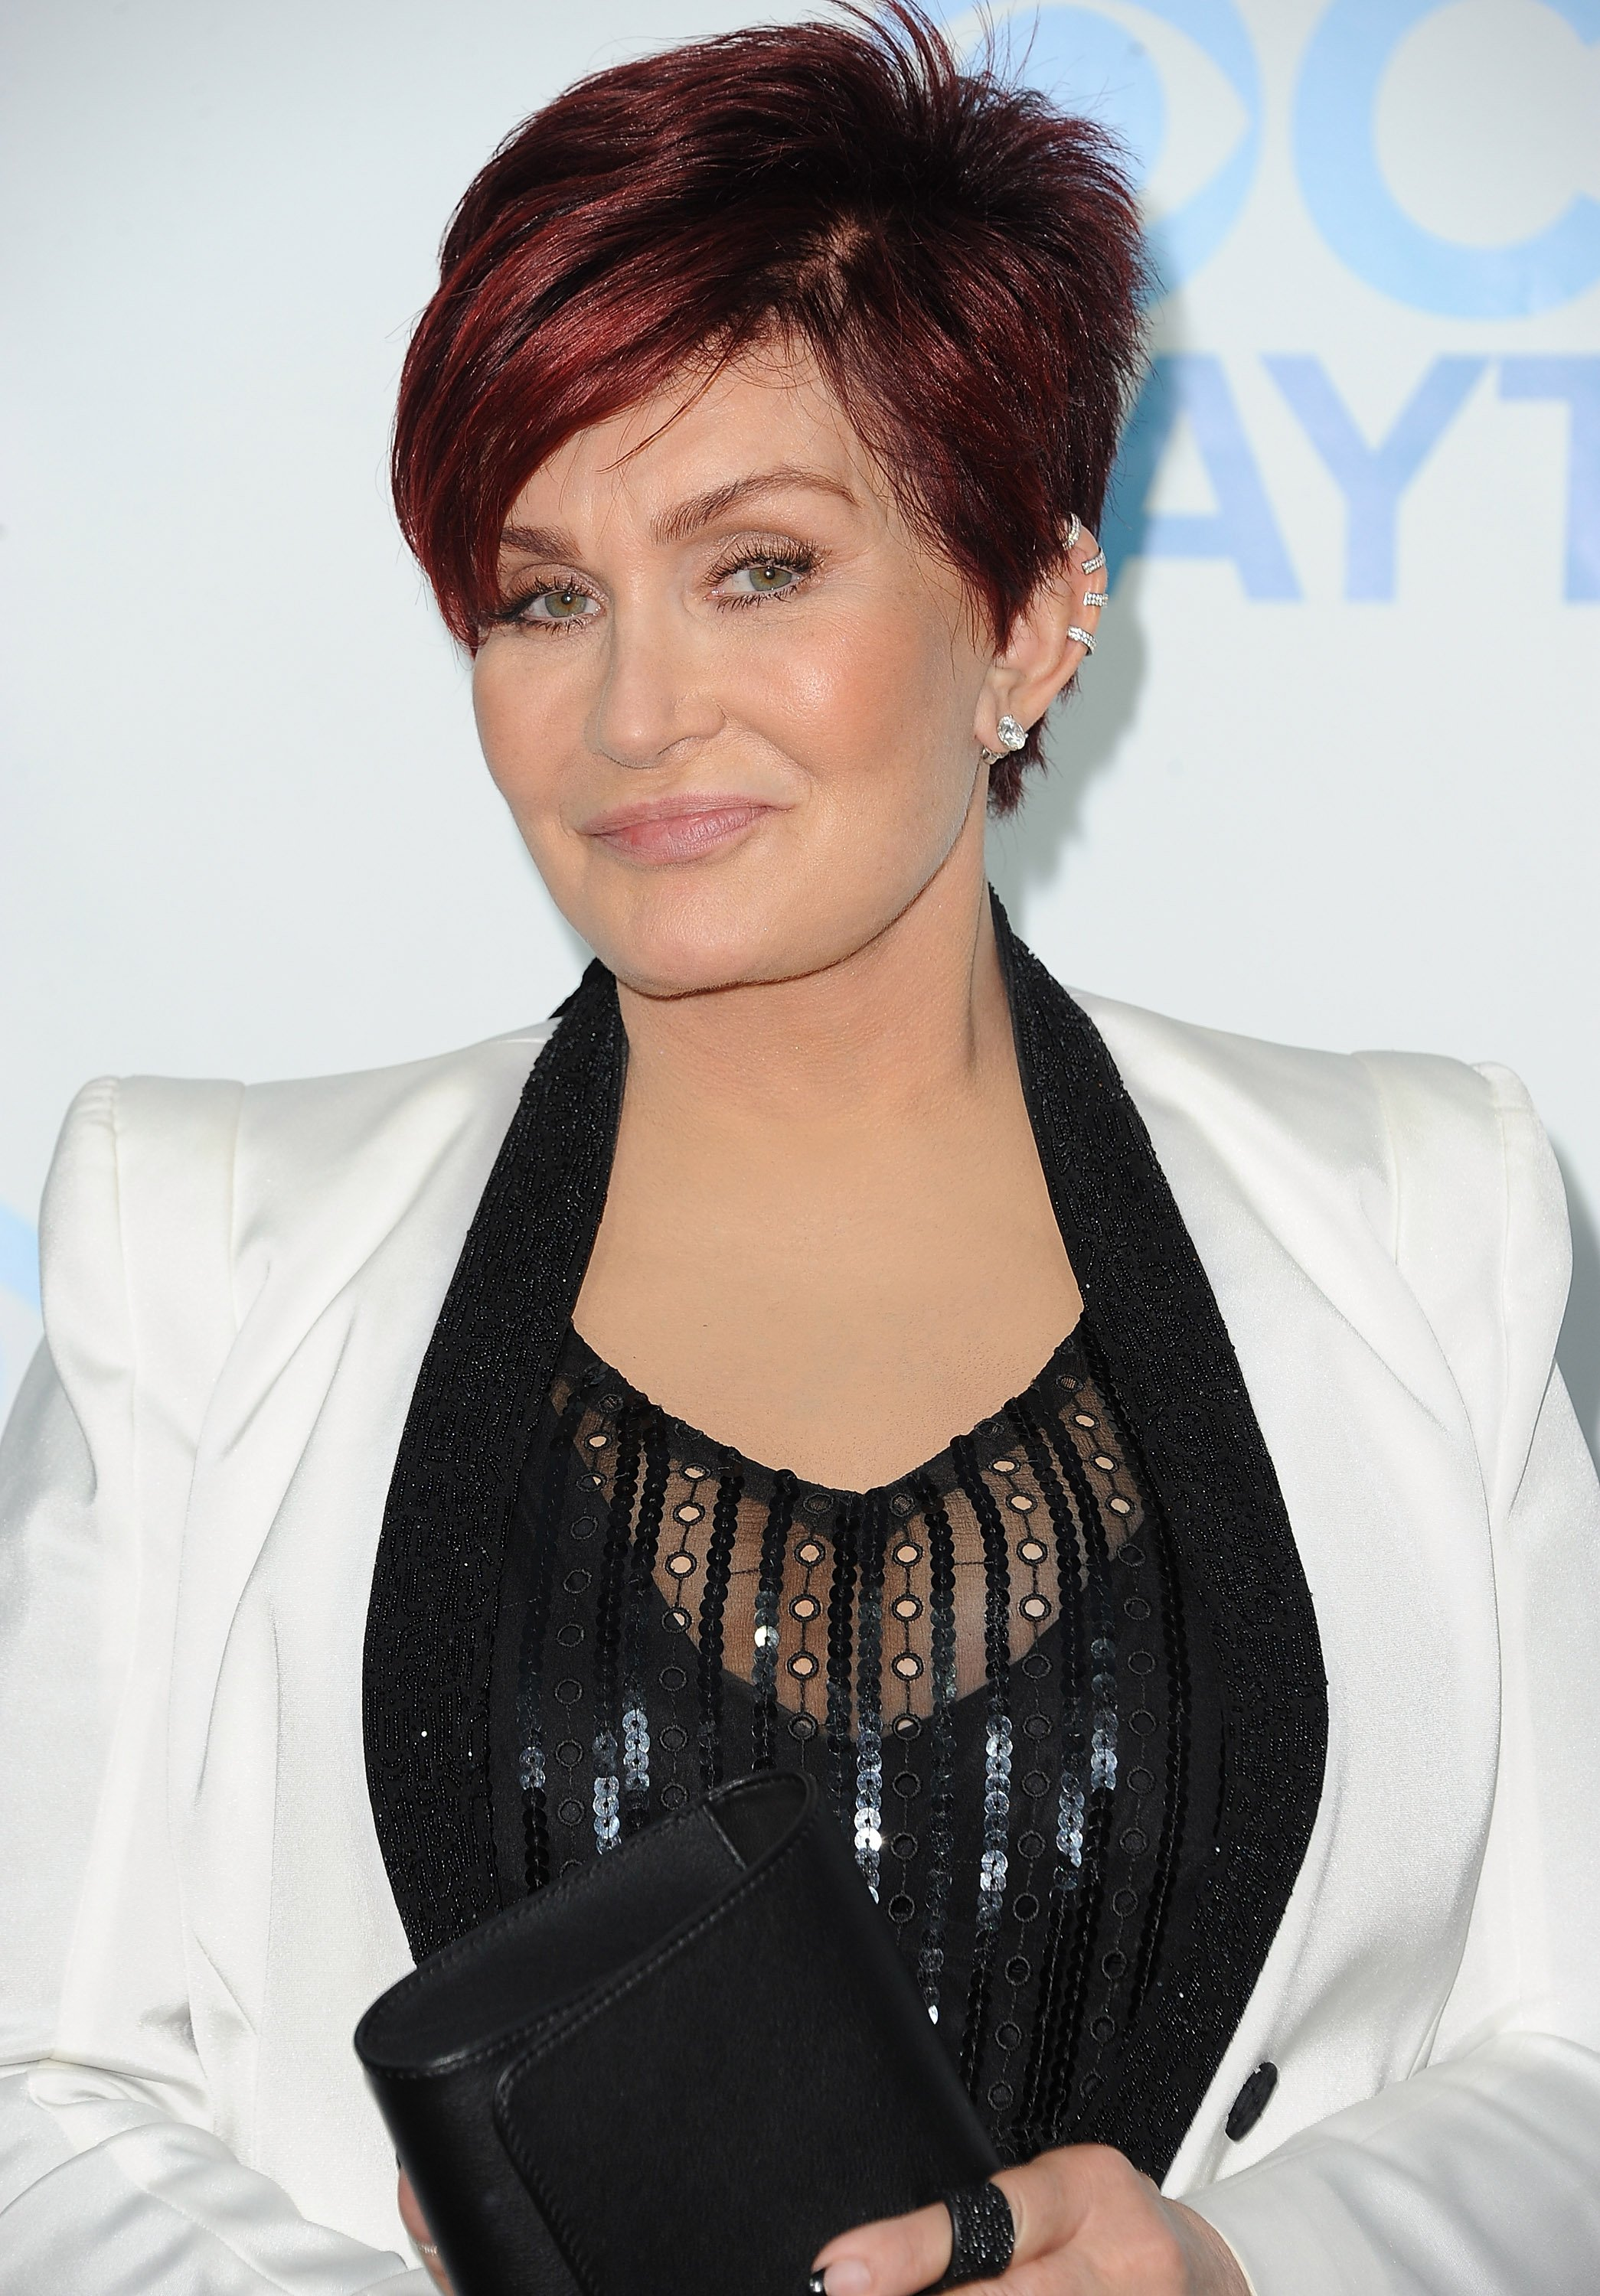 Sharon Osbourne attends the 41st Annual Daytime Emmy Awards CBS after party on June 22, 2014. | Photo: GettyImages